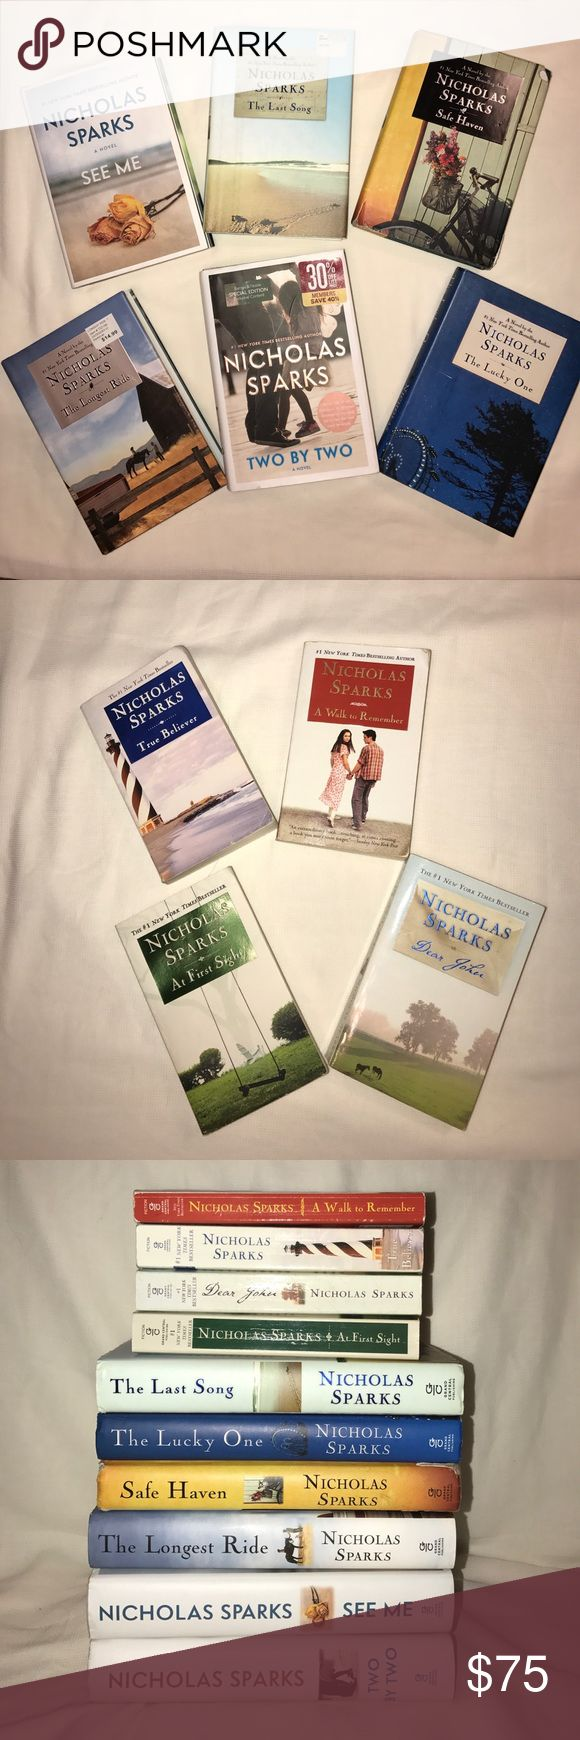 Nicholas Sparks 10 Novels Bundle Nicholas Sparks Novels! 6 Hardcover Books: -Two by Two -See Me -The Longest Ride -Safe Haven -The Lucky One -The Last Song 4 Paperback Books: -At First Sight -Dear John -True Believer -A Walk to Remember (Some of the books show slight wear) ➡️All Reasonable offers will be accepted Other